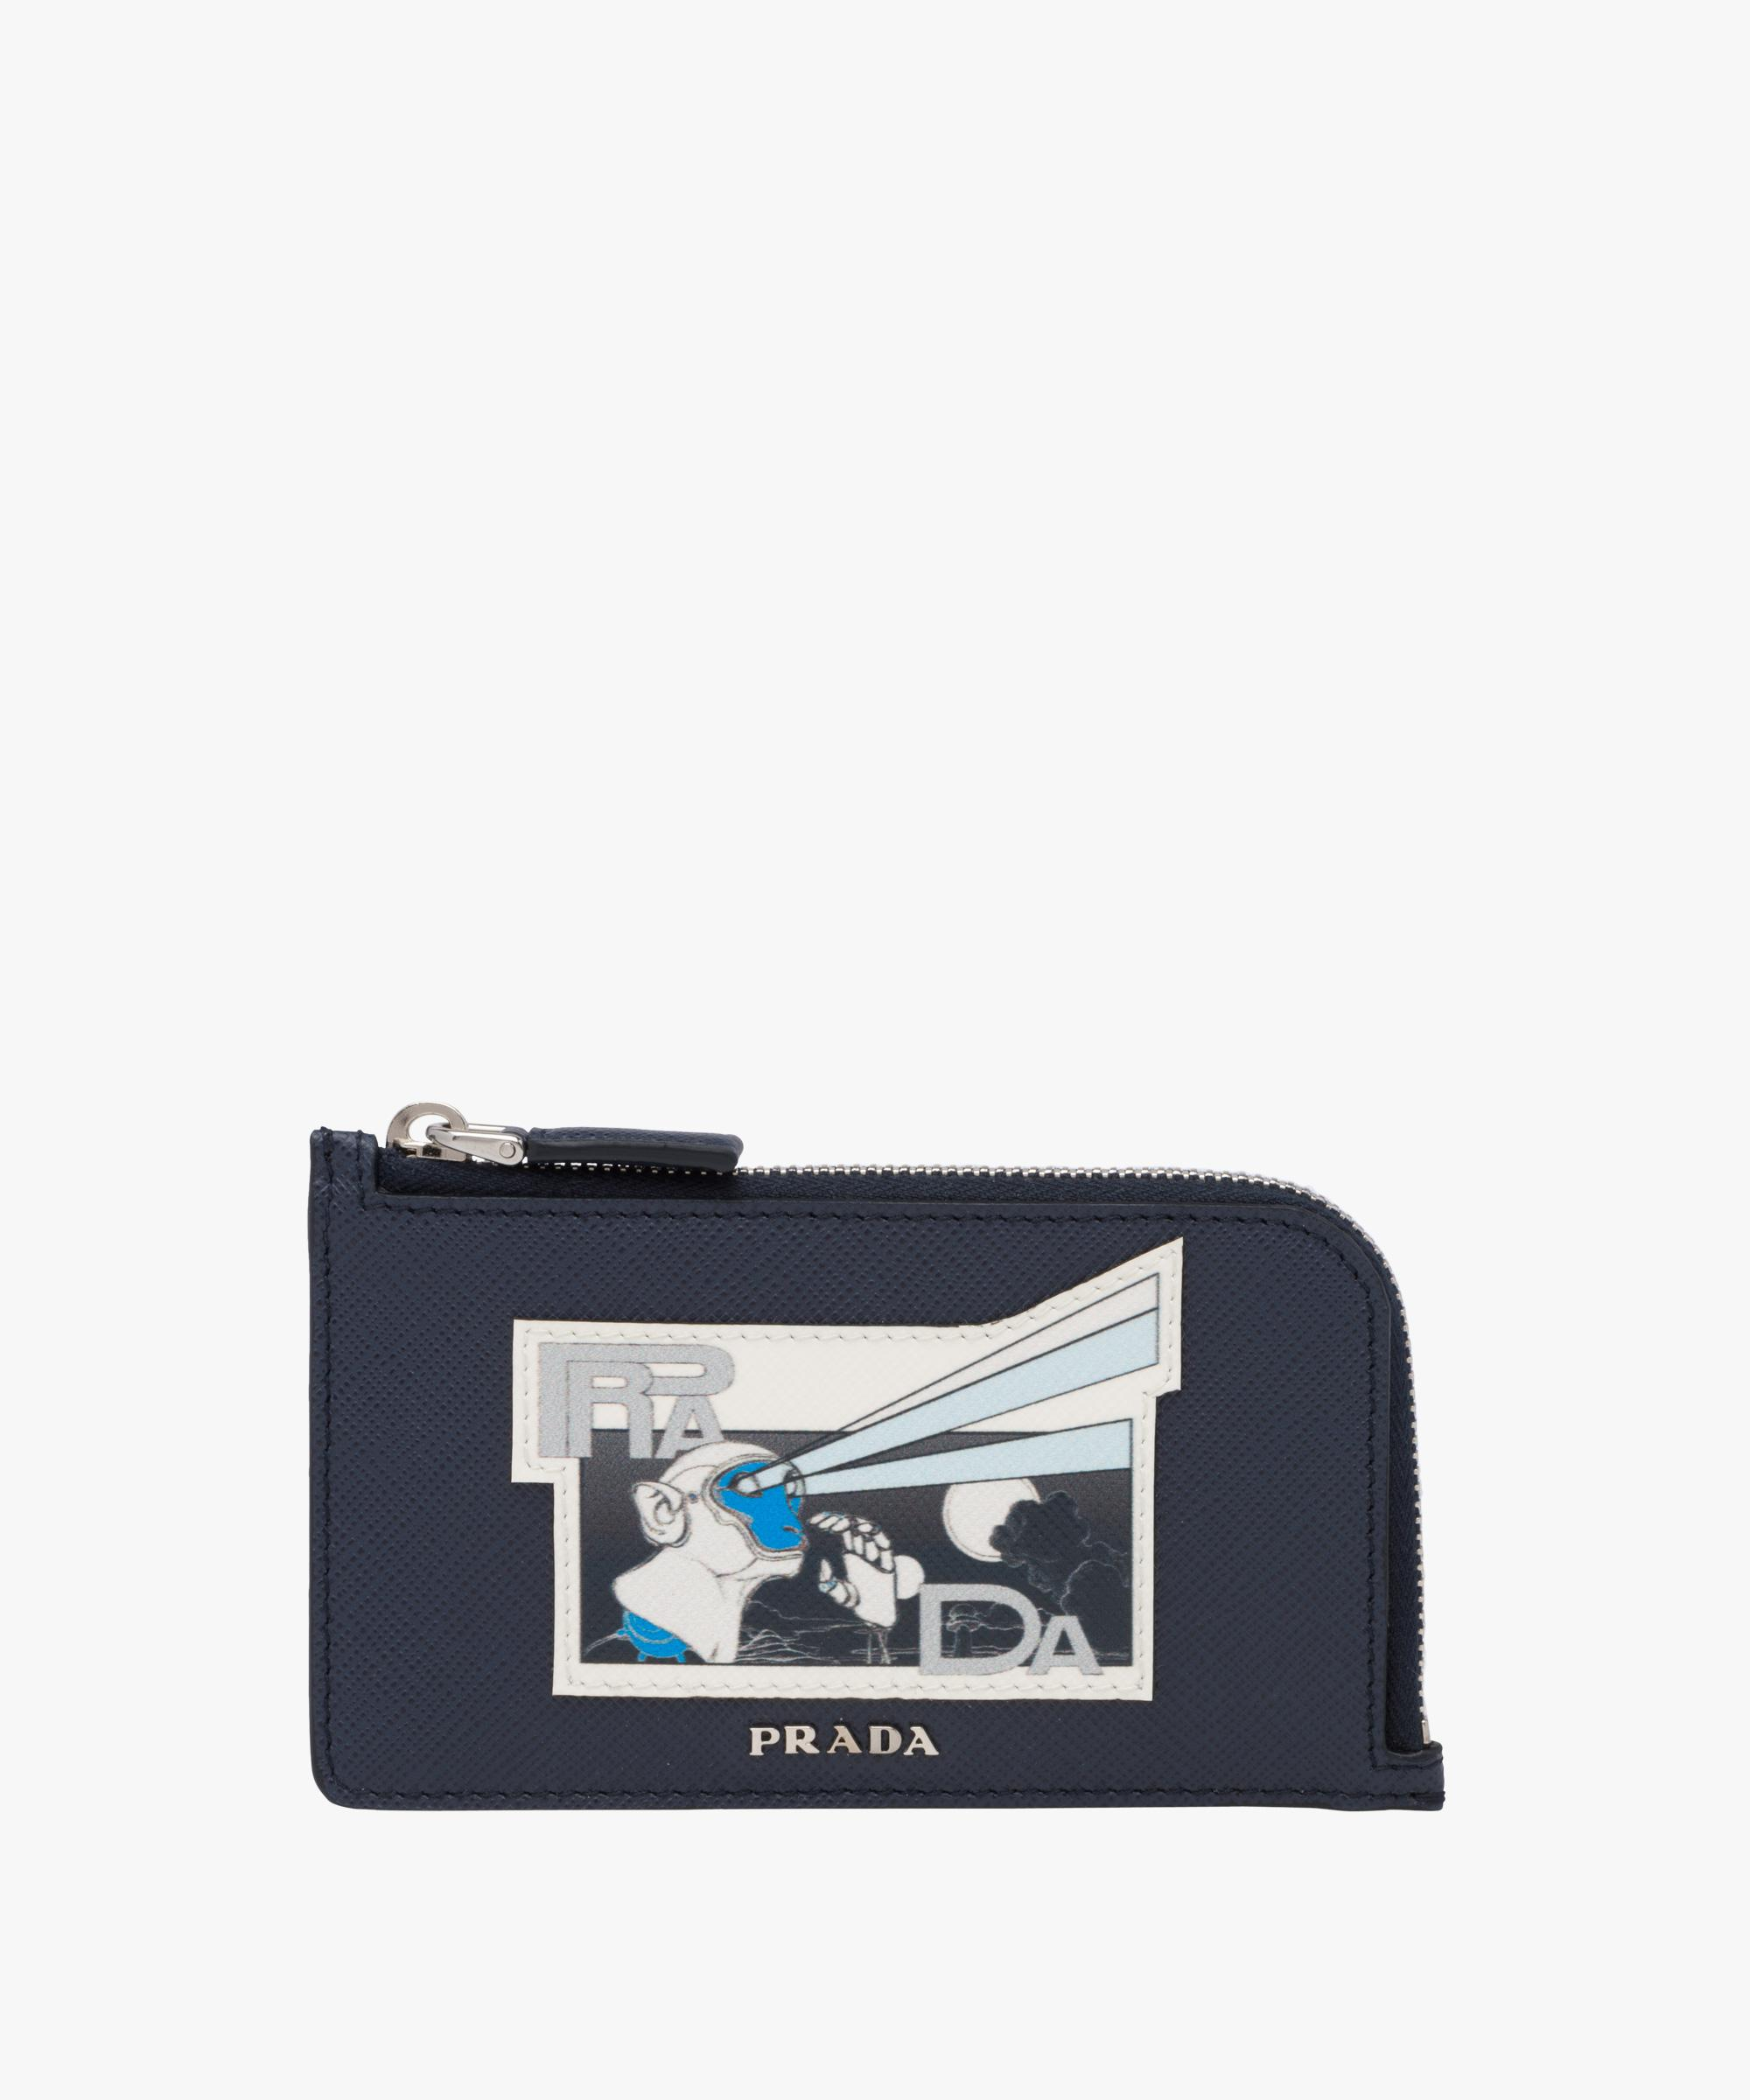 4fac28ab4794 ... italy lyst prada saffiano leather credit card holder in blue for men  e3c17 71bc4